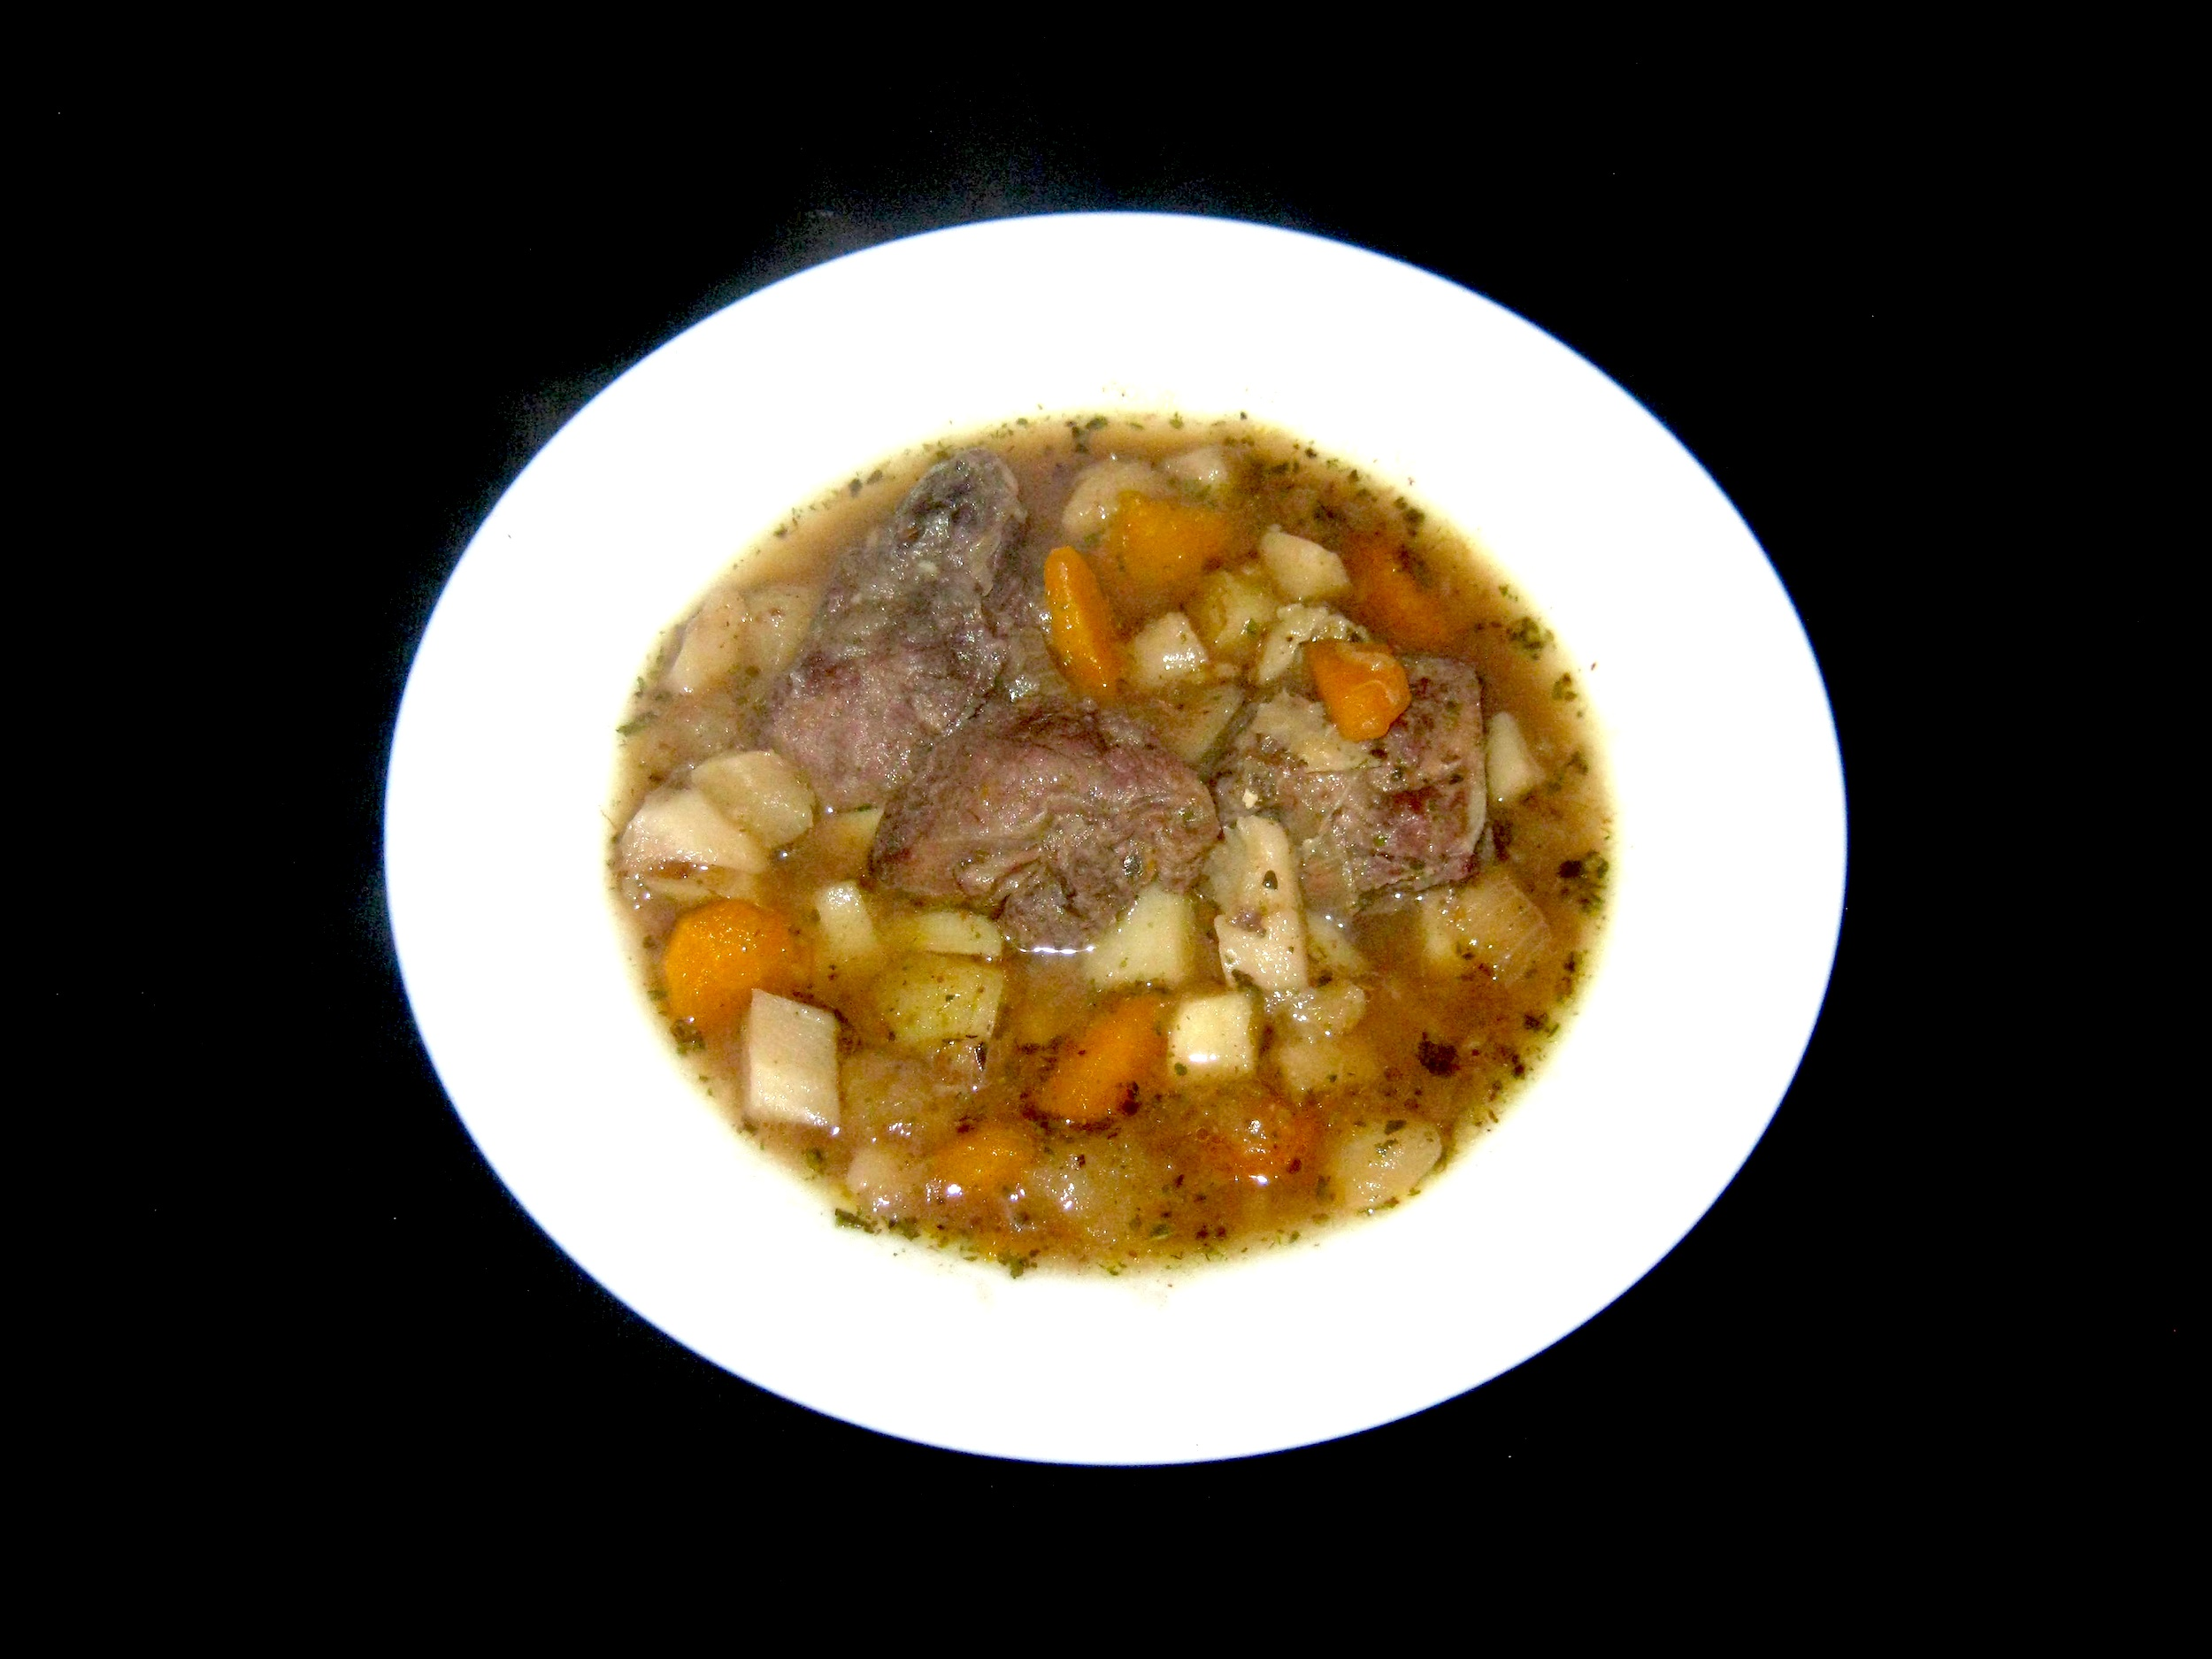 Turnip soup with venison served in a white bowl